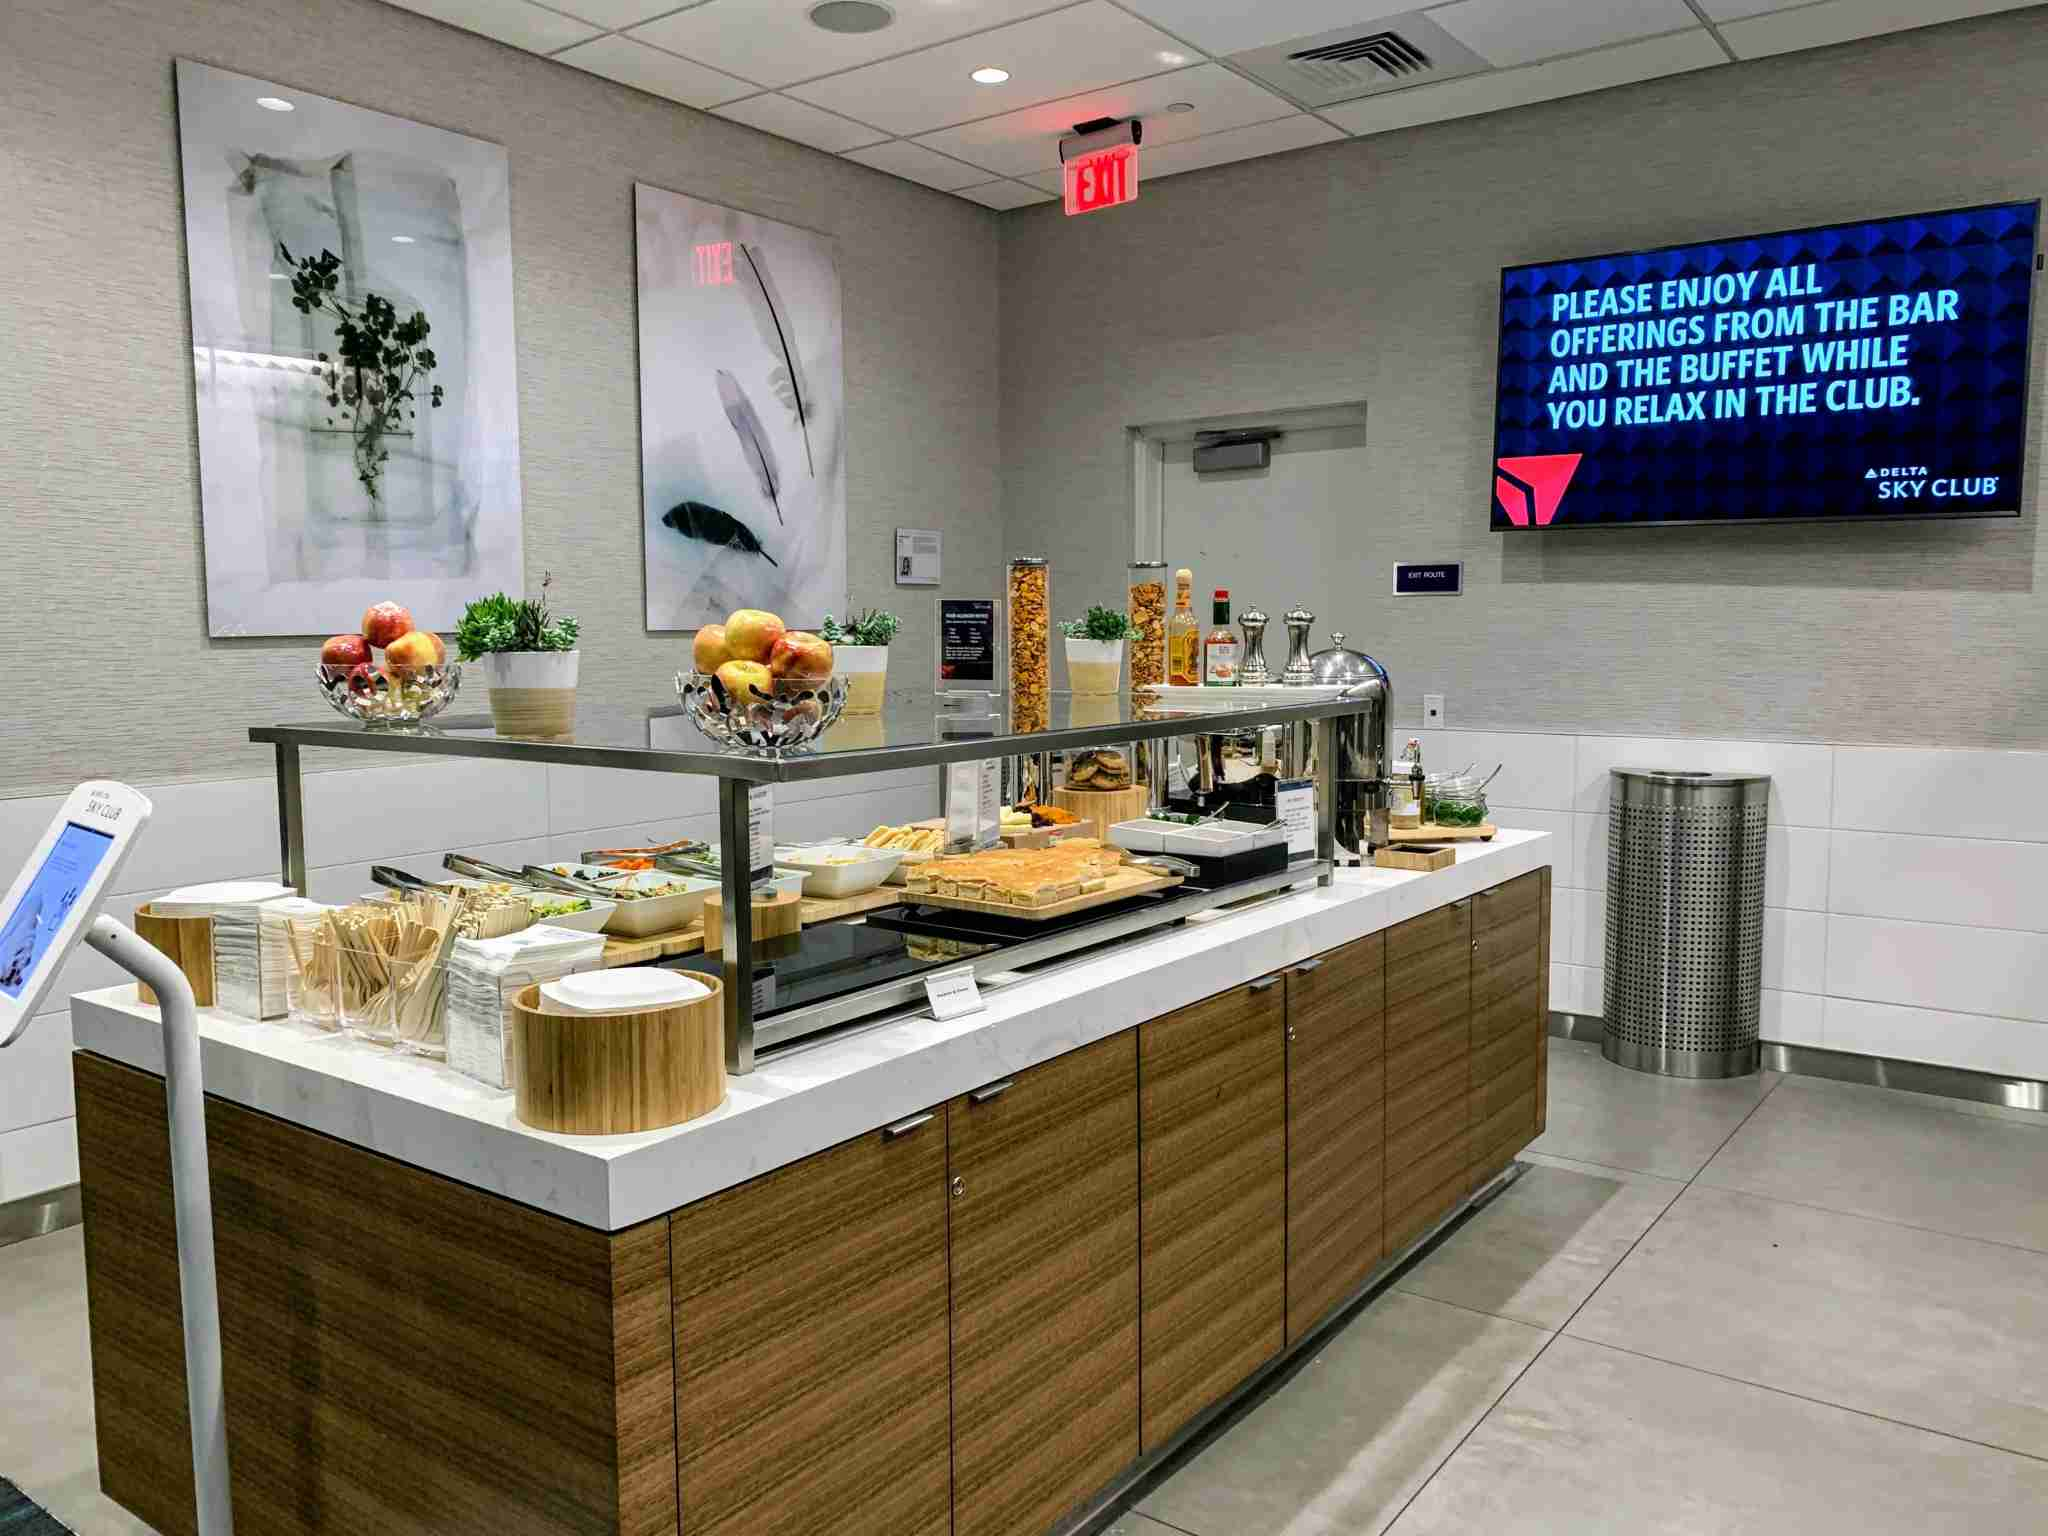 Los Angeles Delta Sky Club (Photo by Darren Murph / The Points Guy)